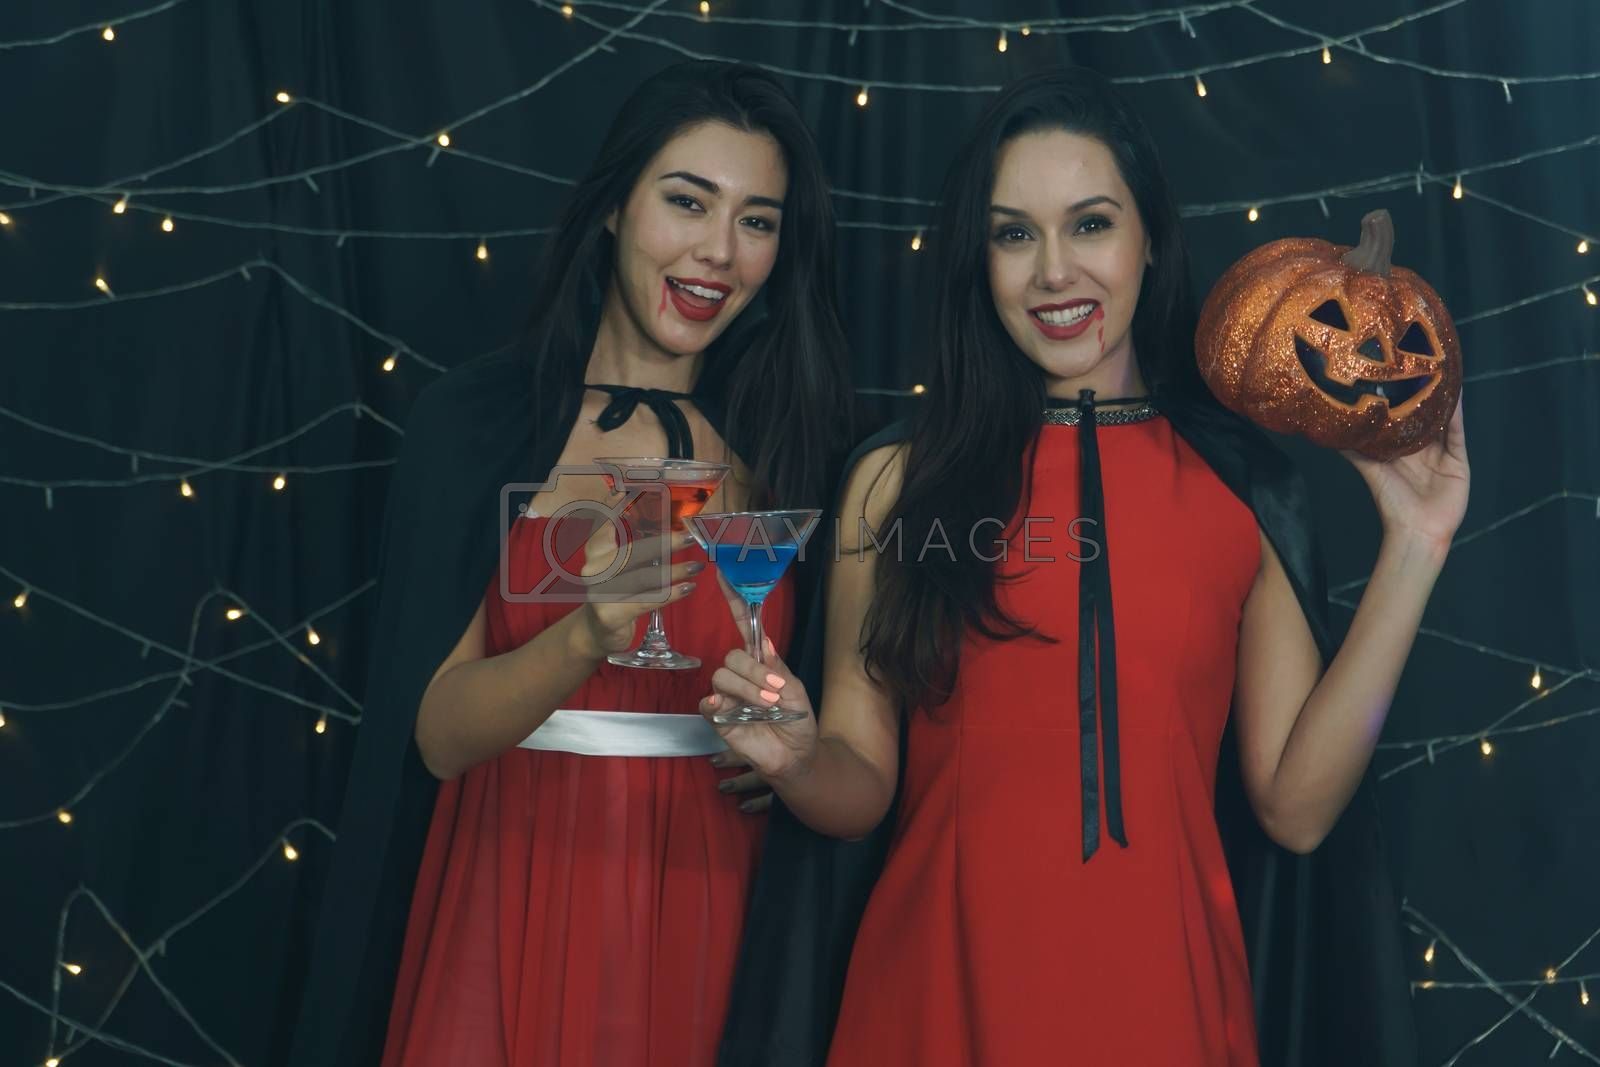 Beautiful woman and friend in Halloween devil costume with carved pumpkin and drinking cocktail. Have fun at a party in nightclub decorated with lights. Halloween celebration